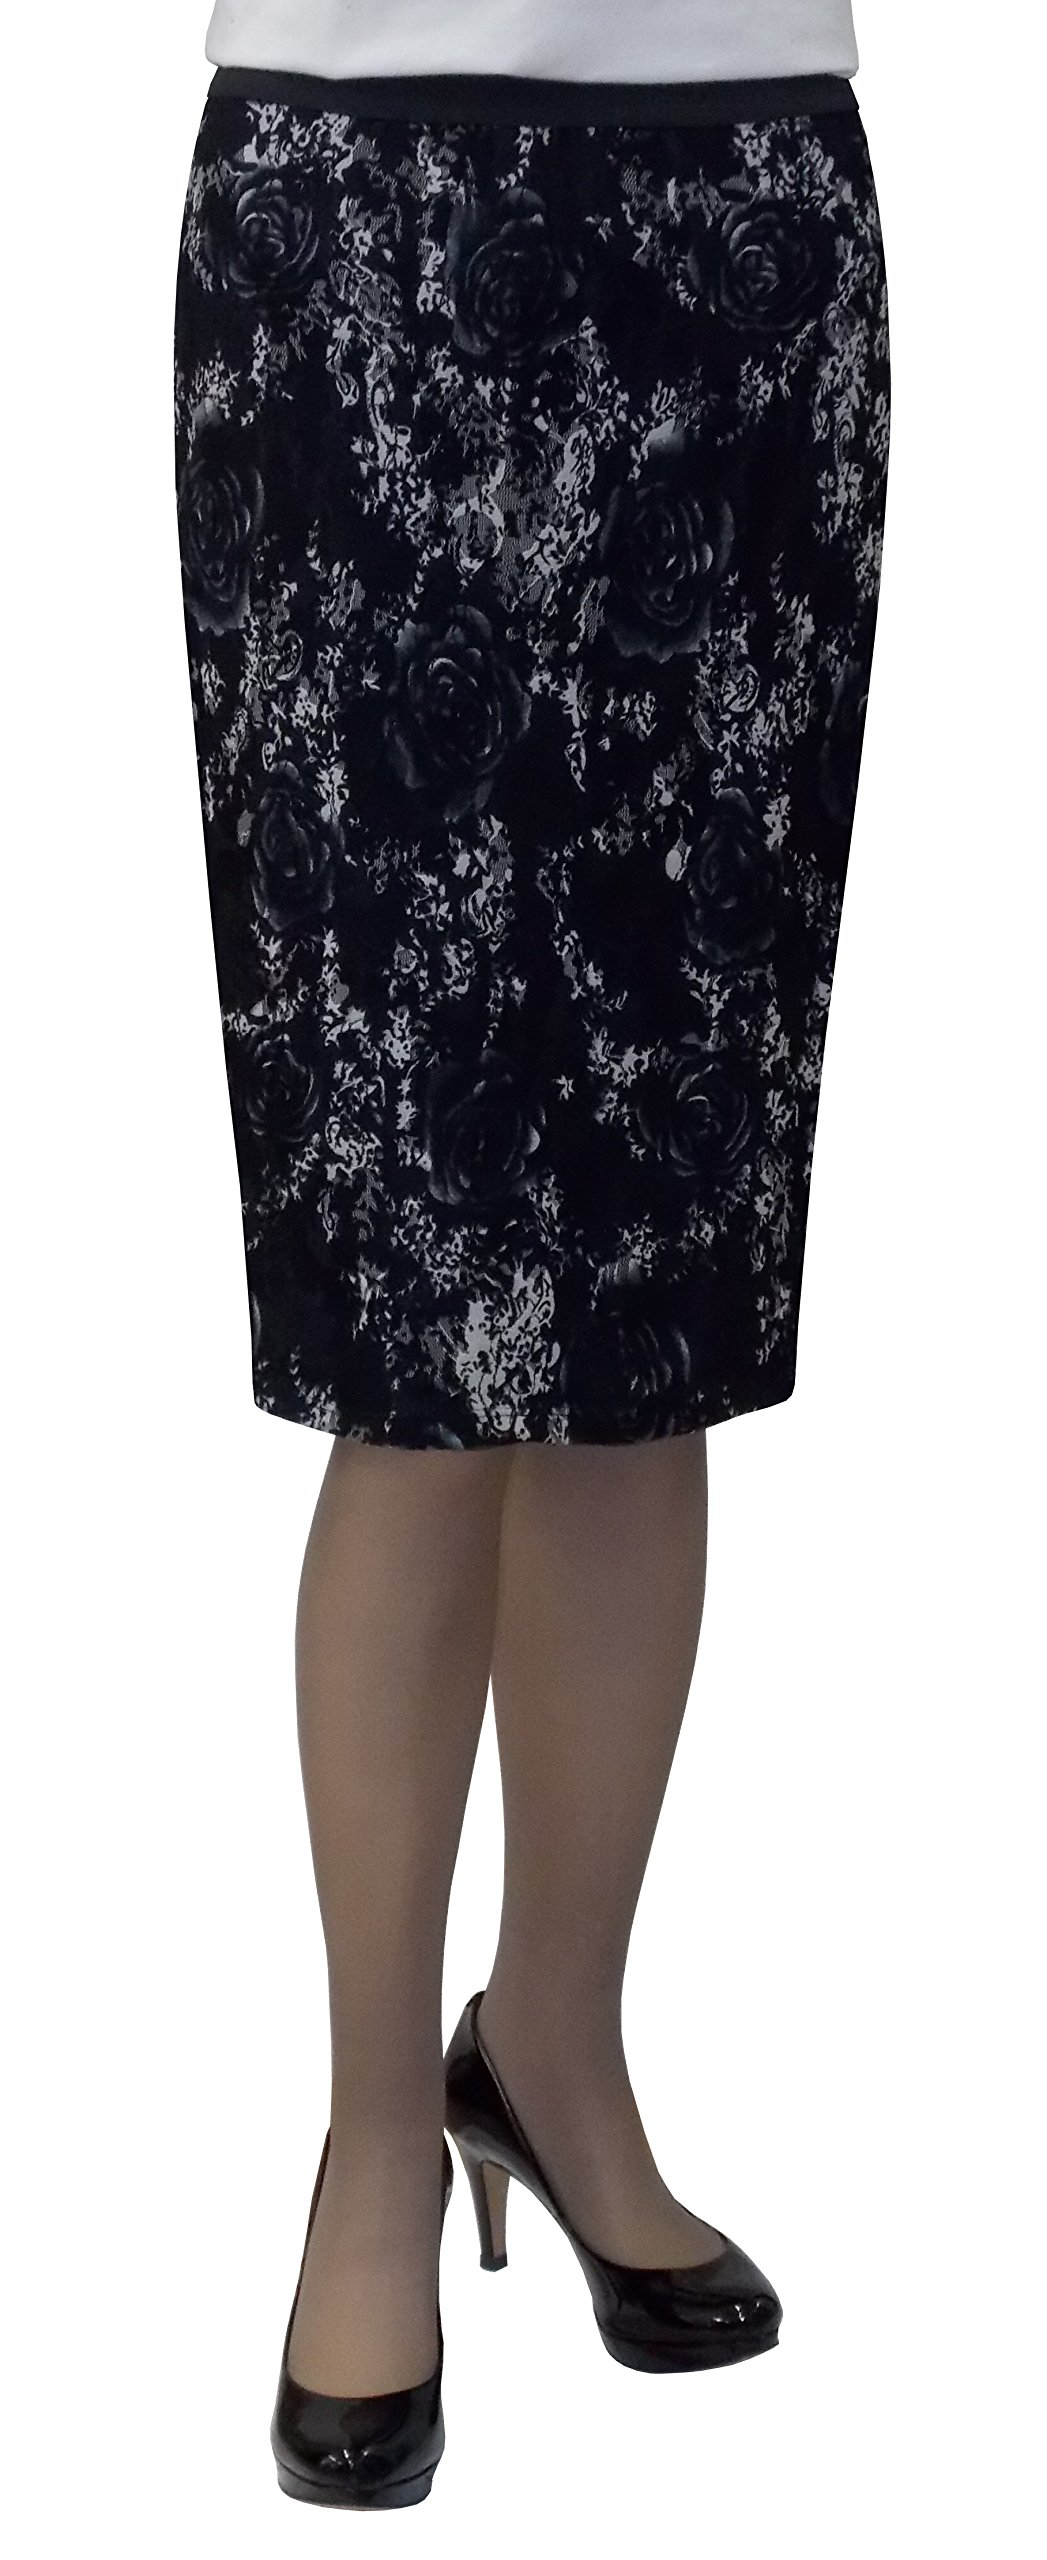 Baby'O Women's Black Floral Stretch Lace Pencil Skirt Medium